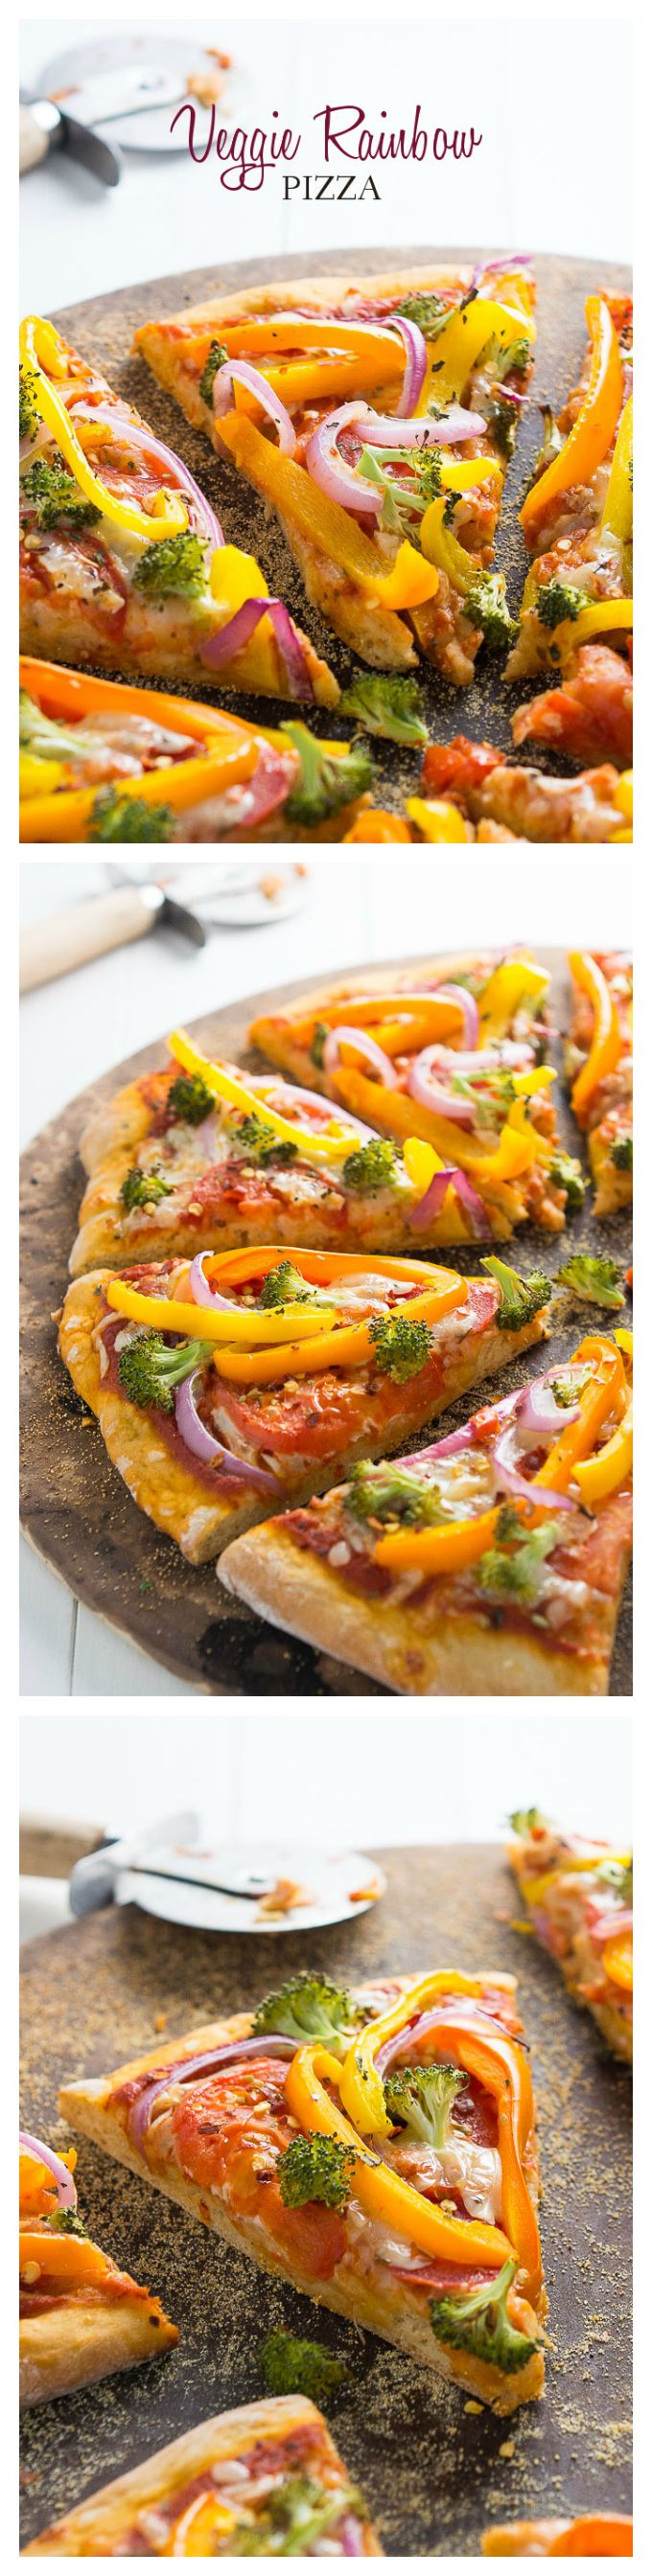 Veggie Rainbow Pizza | A healthy festive meal for St. Patrick's Day or meatless Monday!